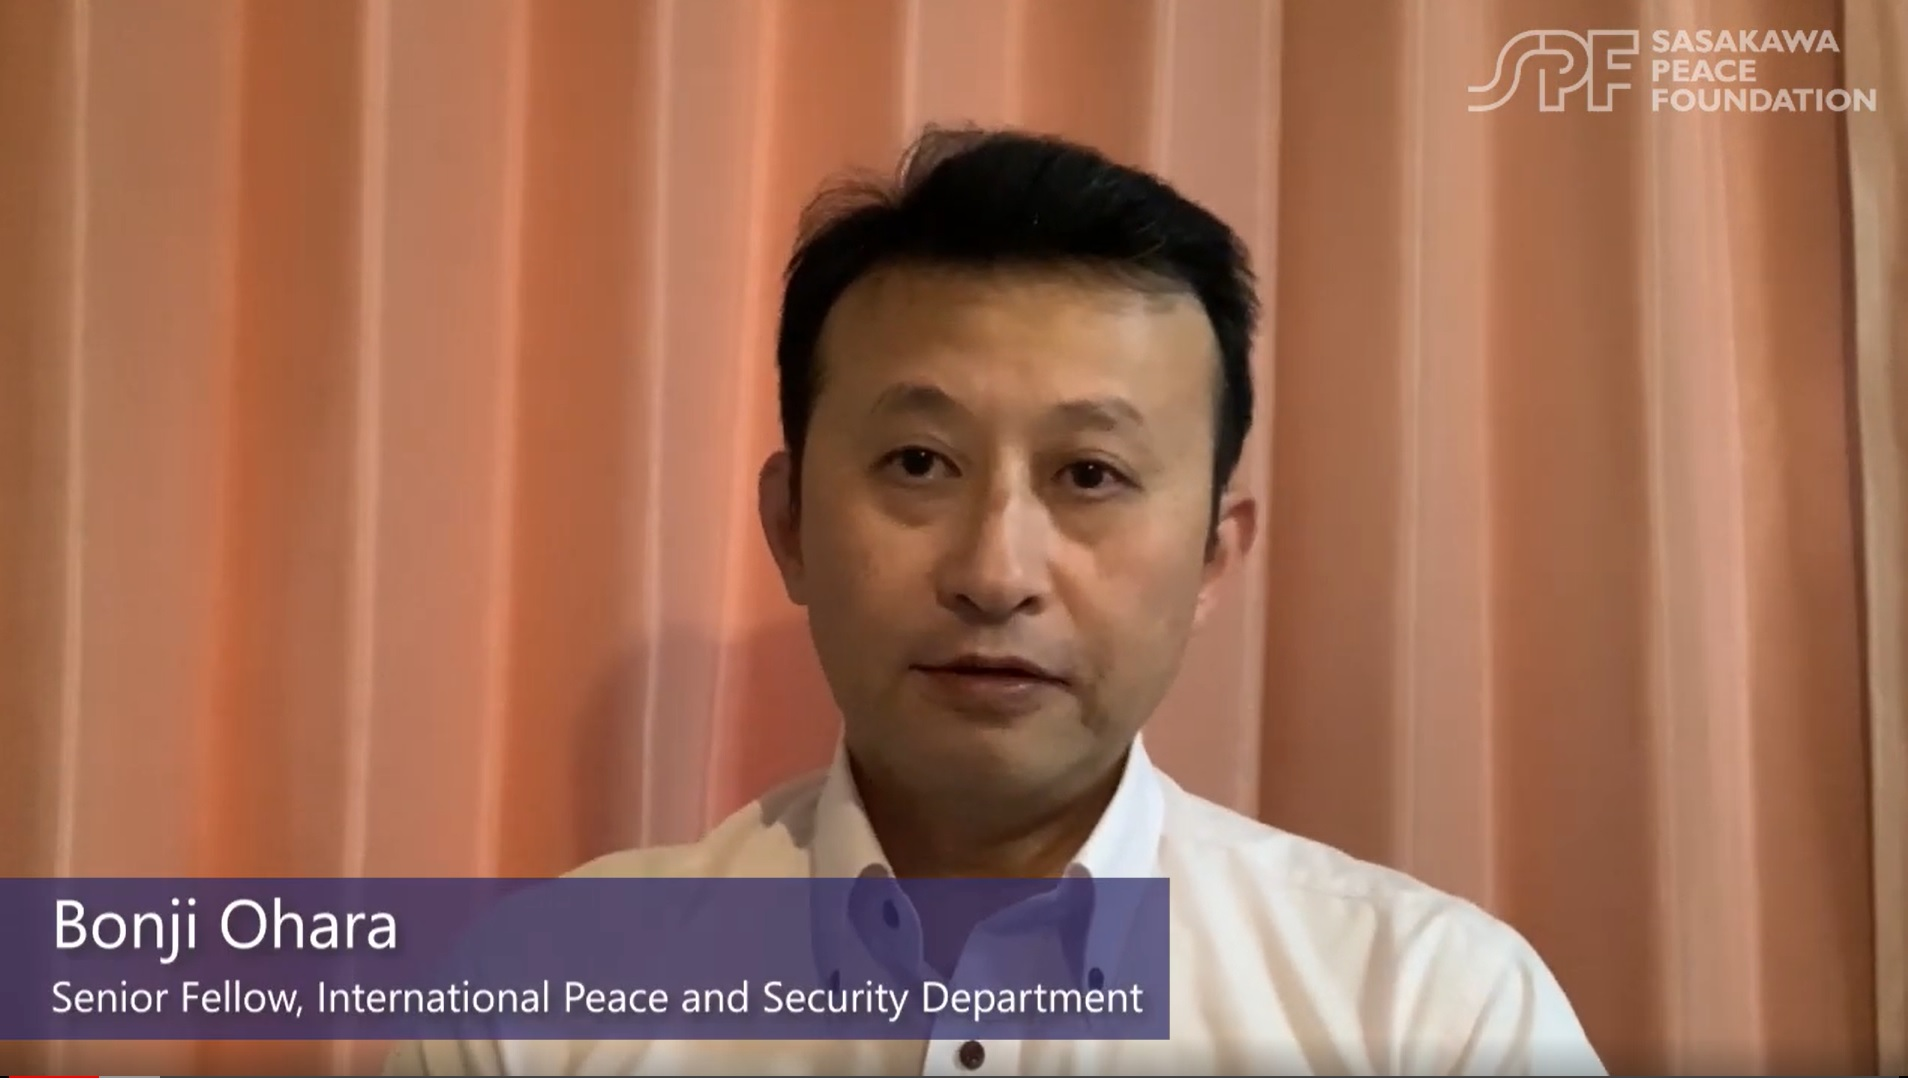 Changes to the global order during the COVID-19 pandemic Interview with SPF Senior Fellow Bonji Ohara